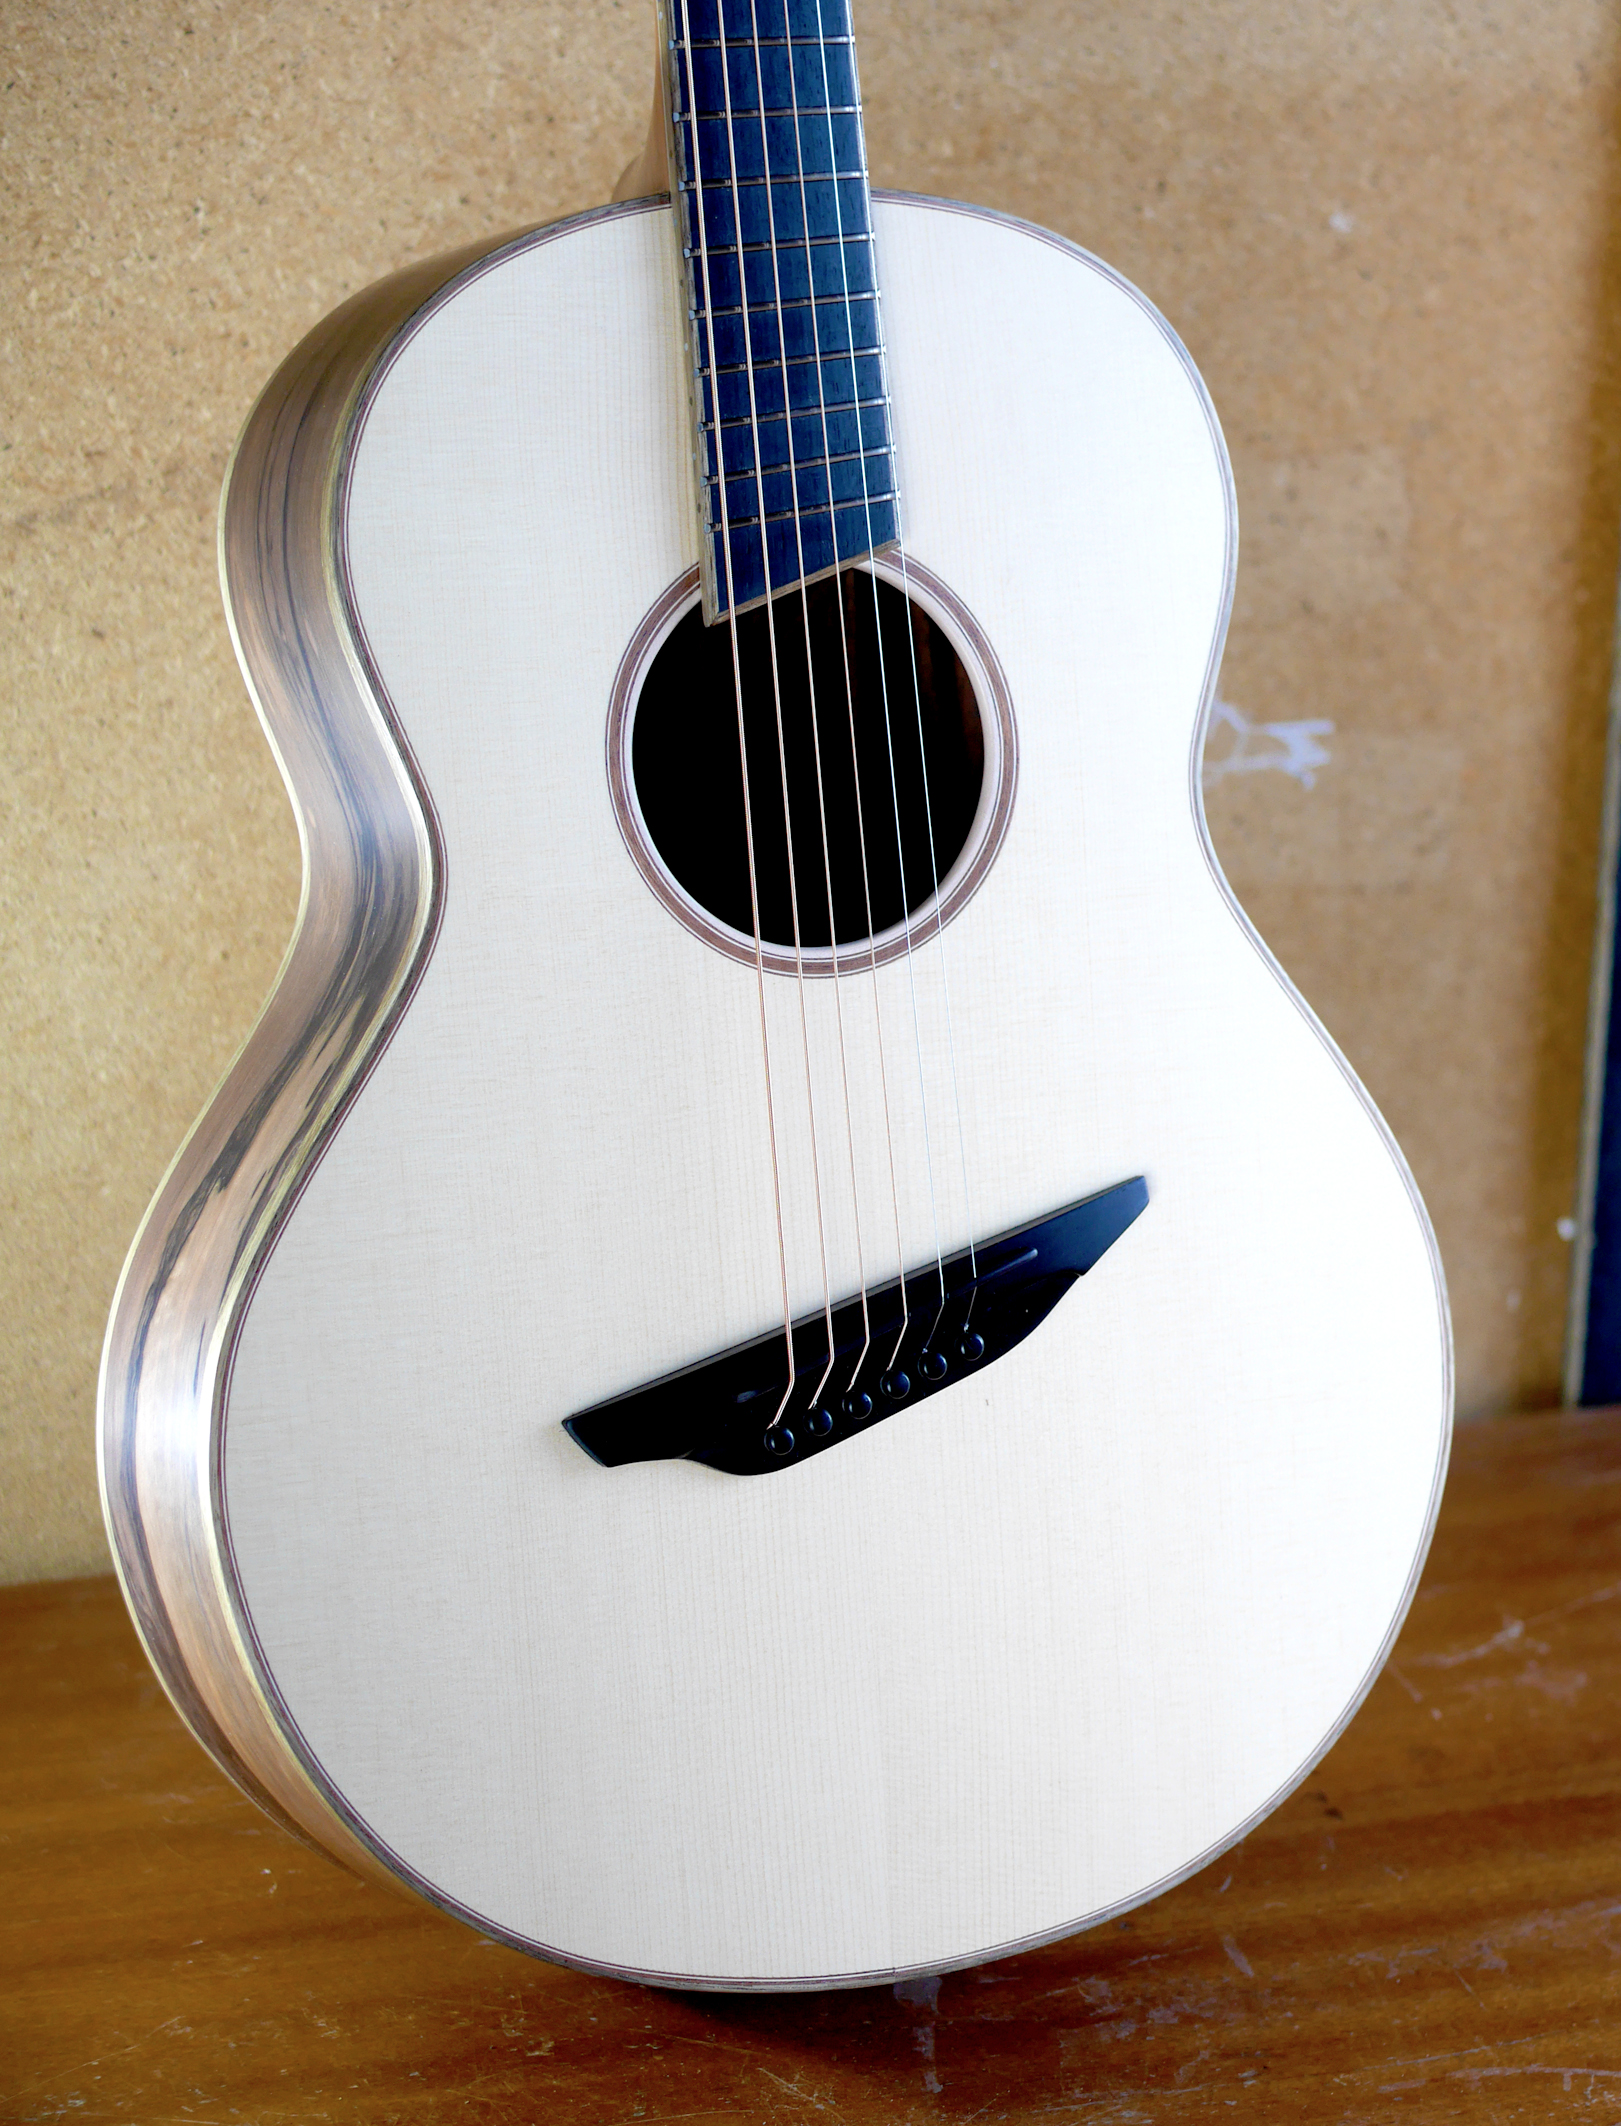 fan fret, spruce, ebony, luthier